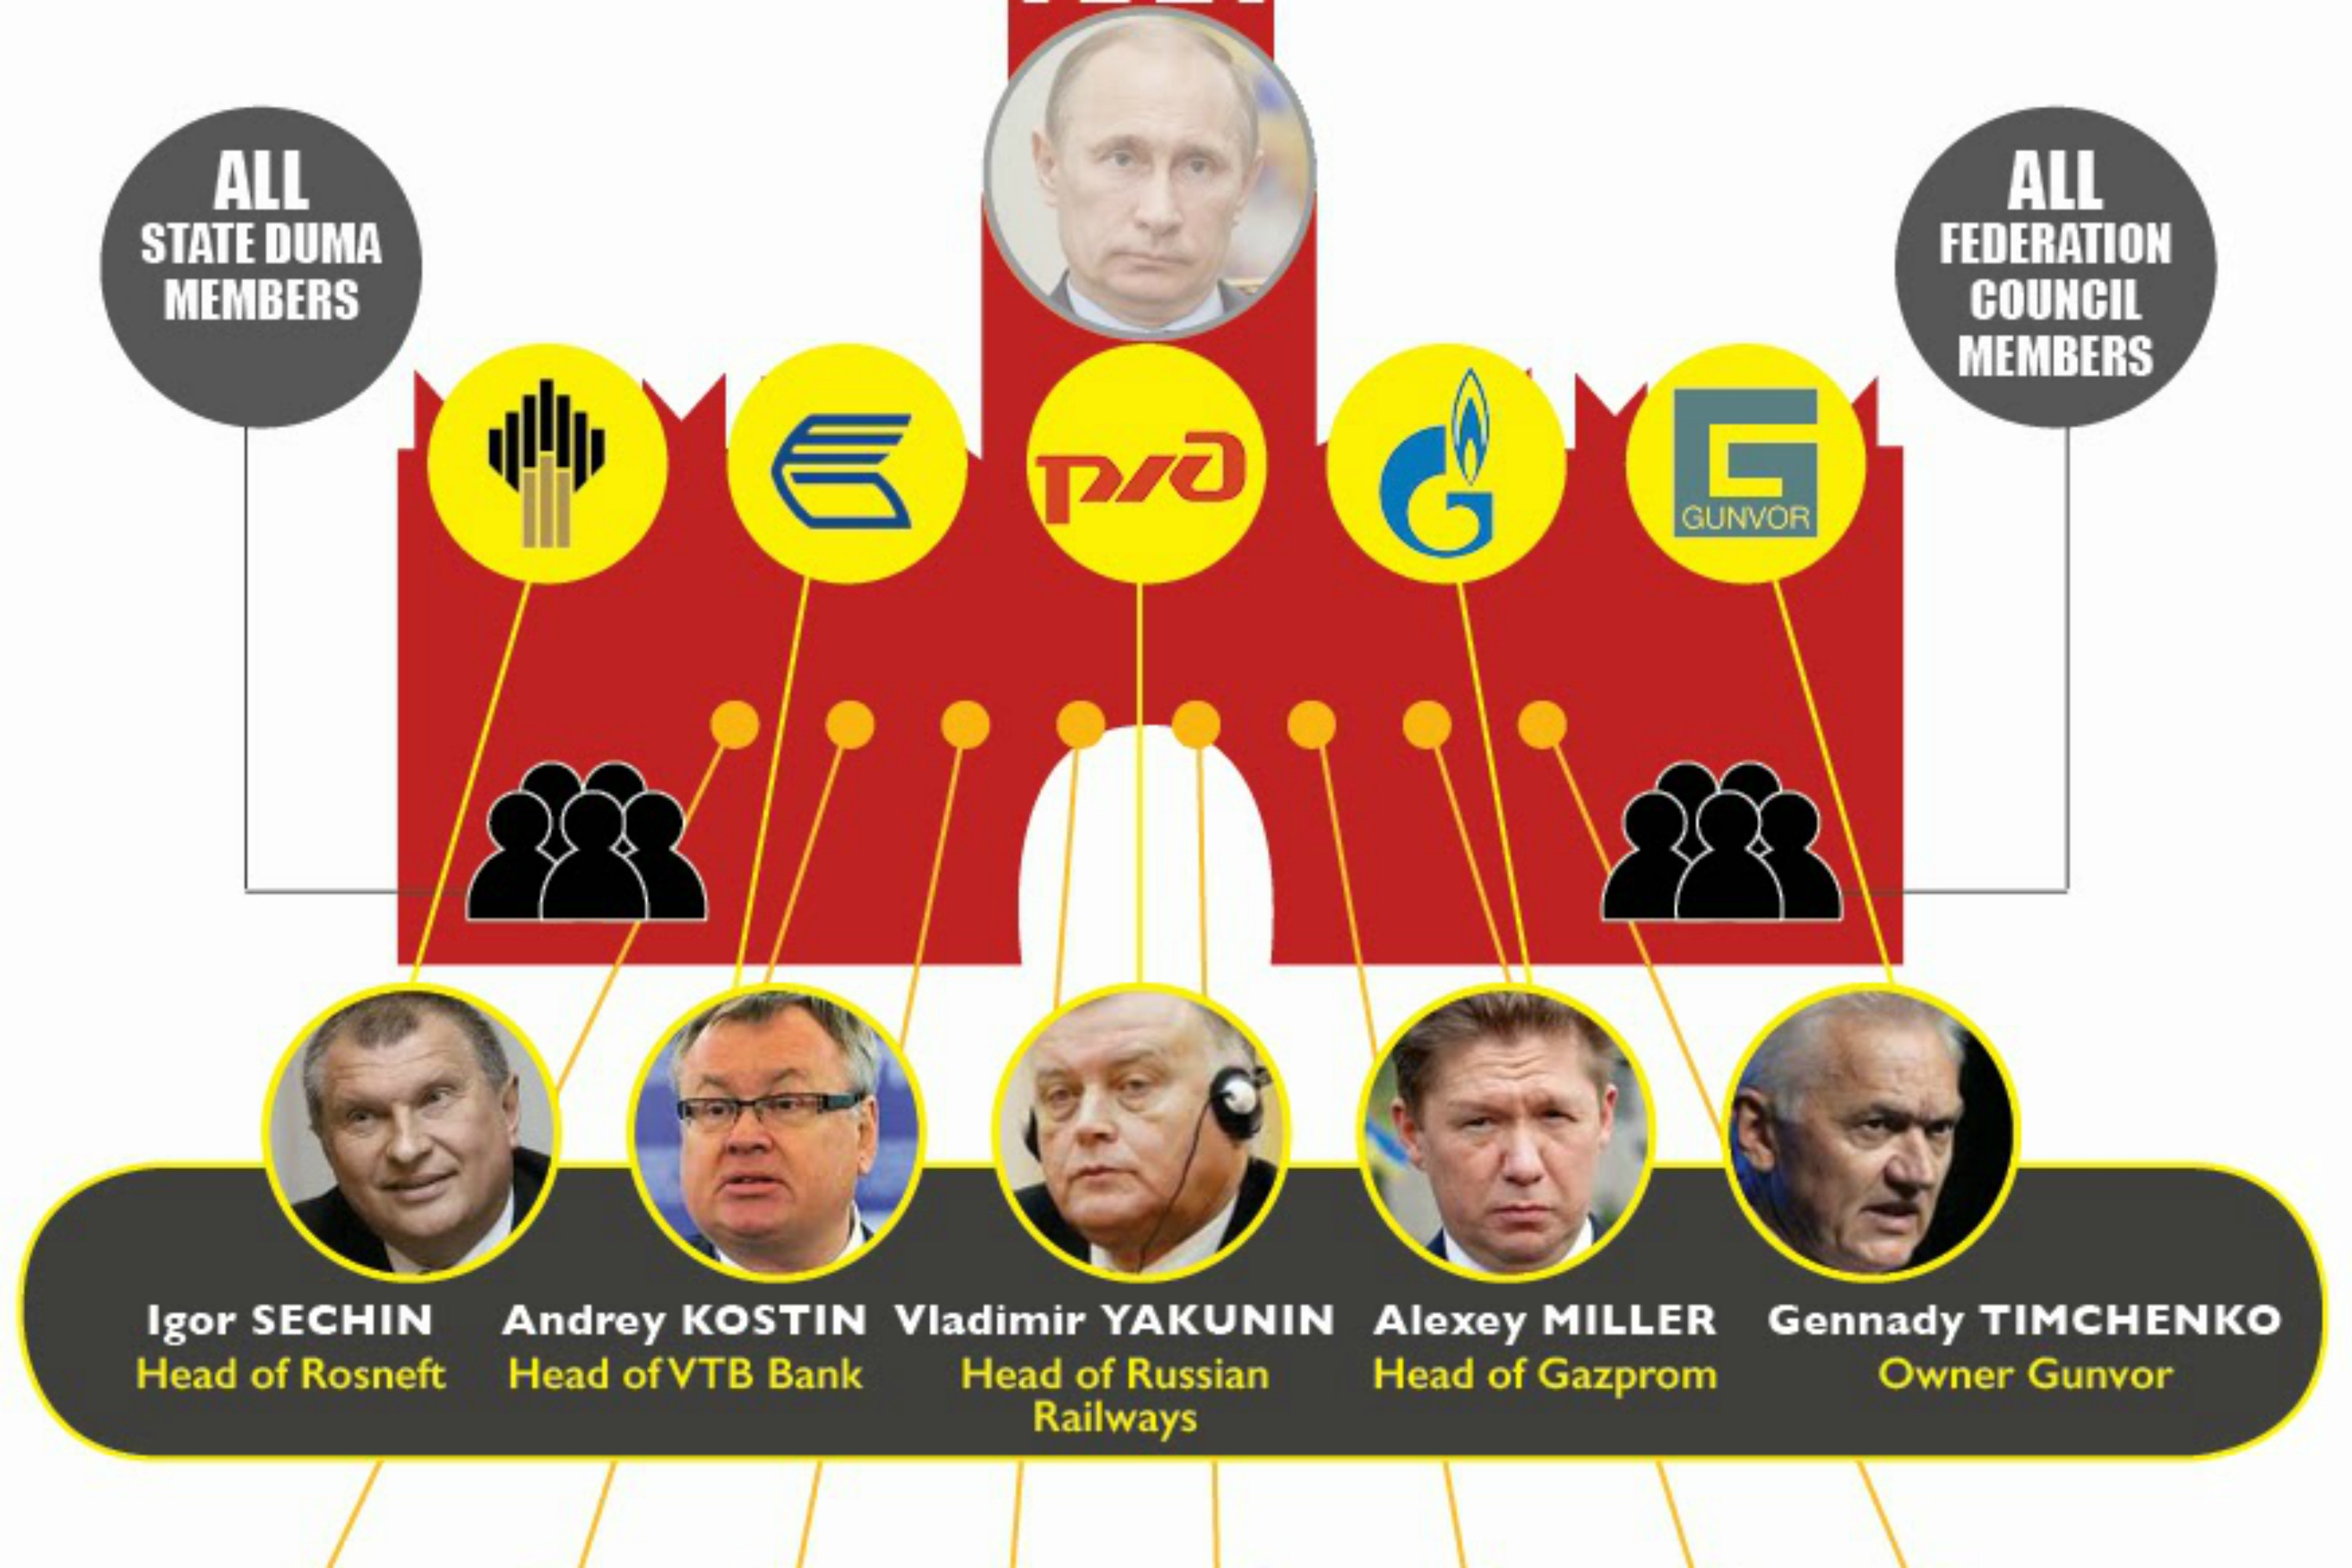 Russian oligarchs targeted by sanctions. Photo ALDE website